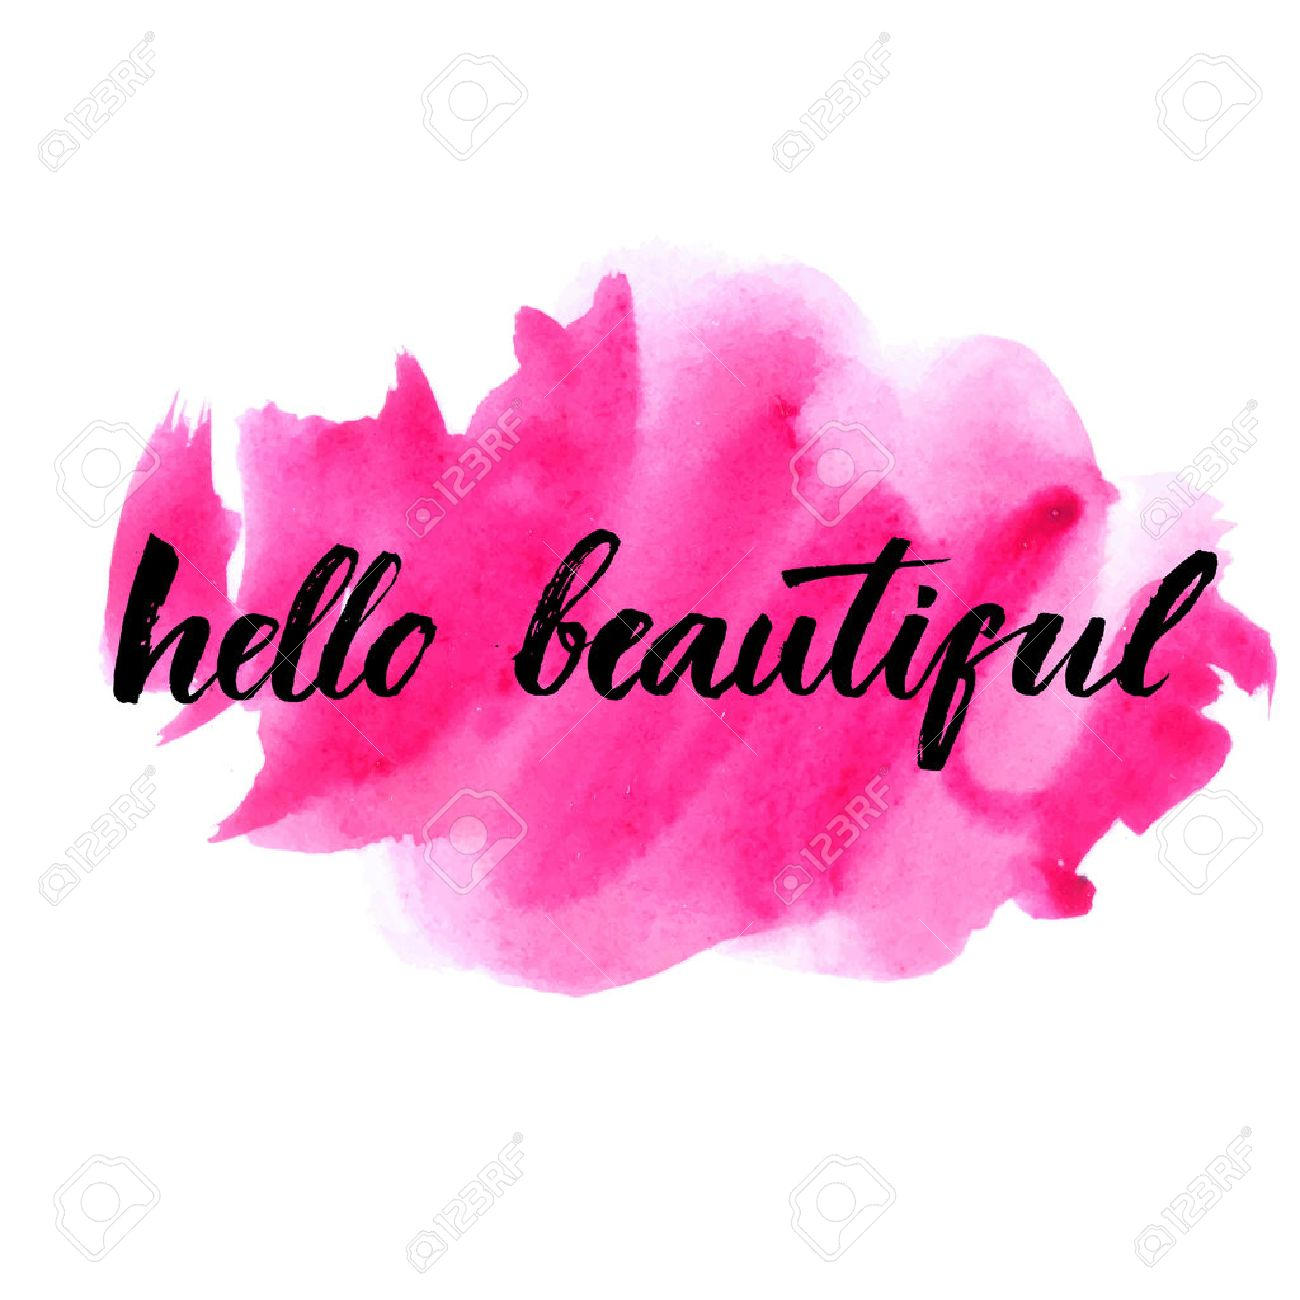 Hello beautiful - vector lettering with hand drawn heart. Calligraphy phrase for gift cards, baby birthday, scrapbooking, beauty blogs. Typography art. - 47454237